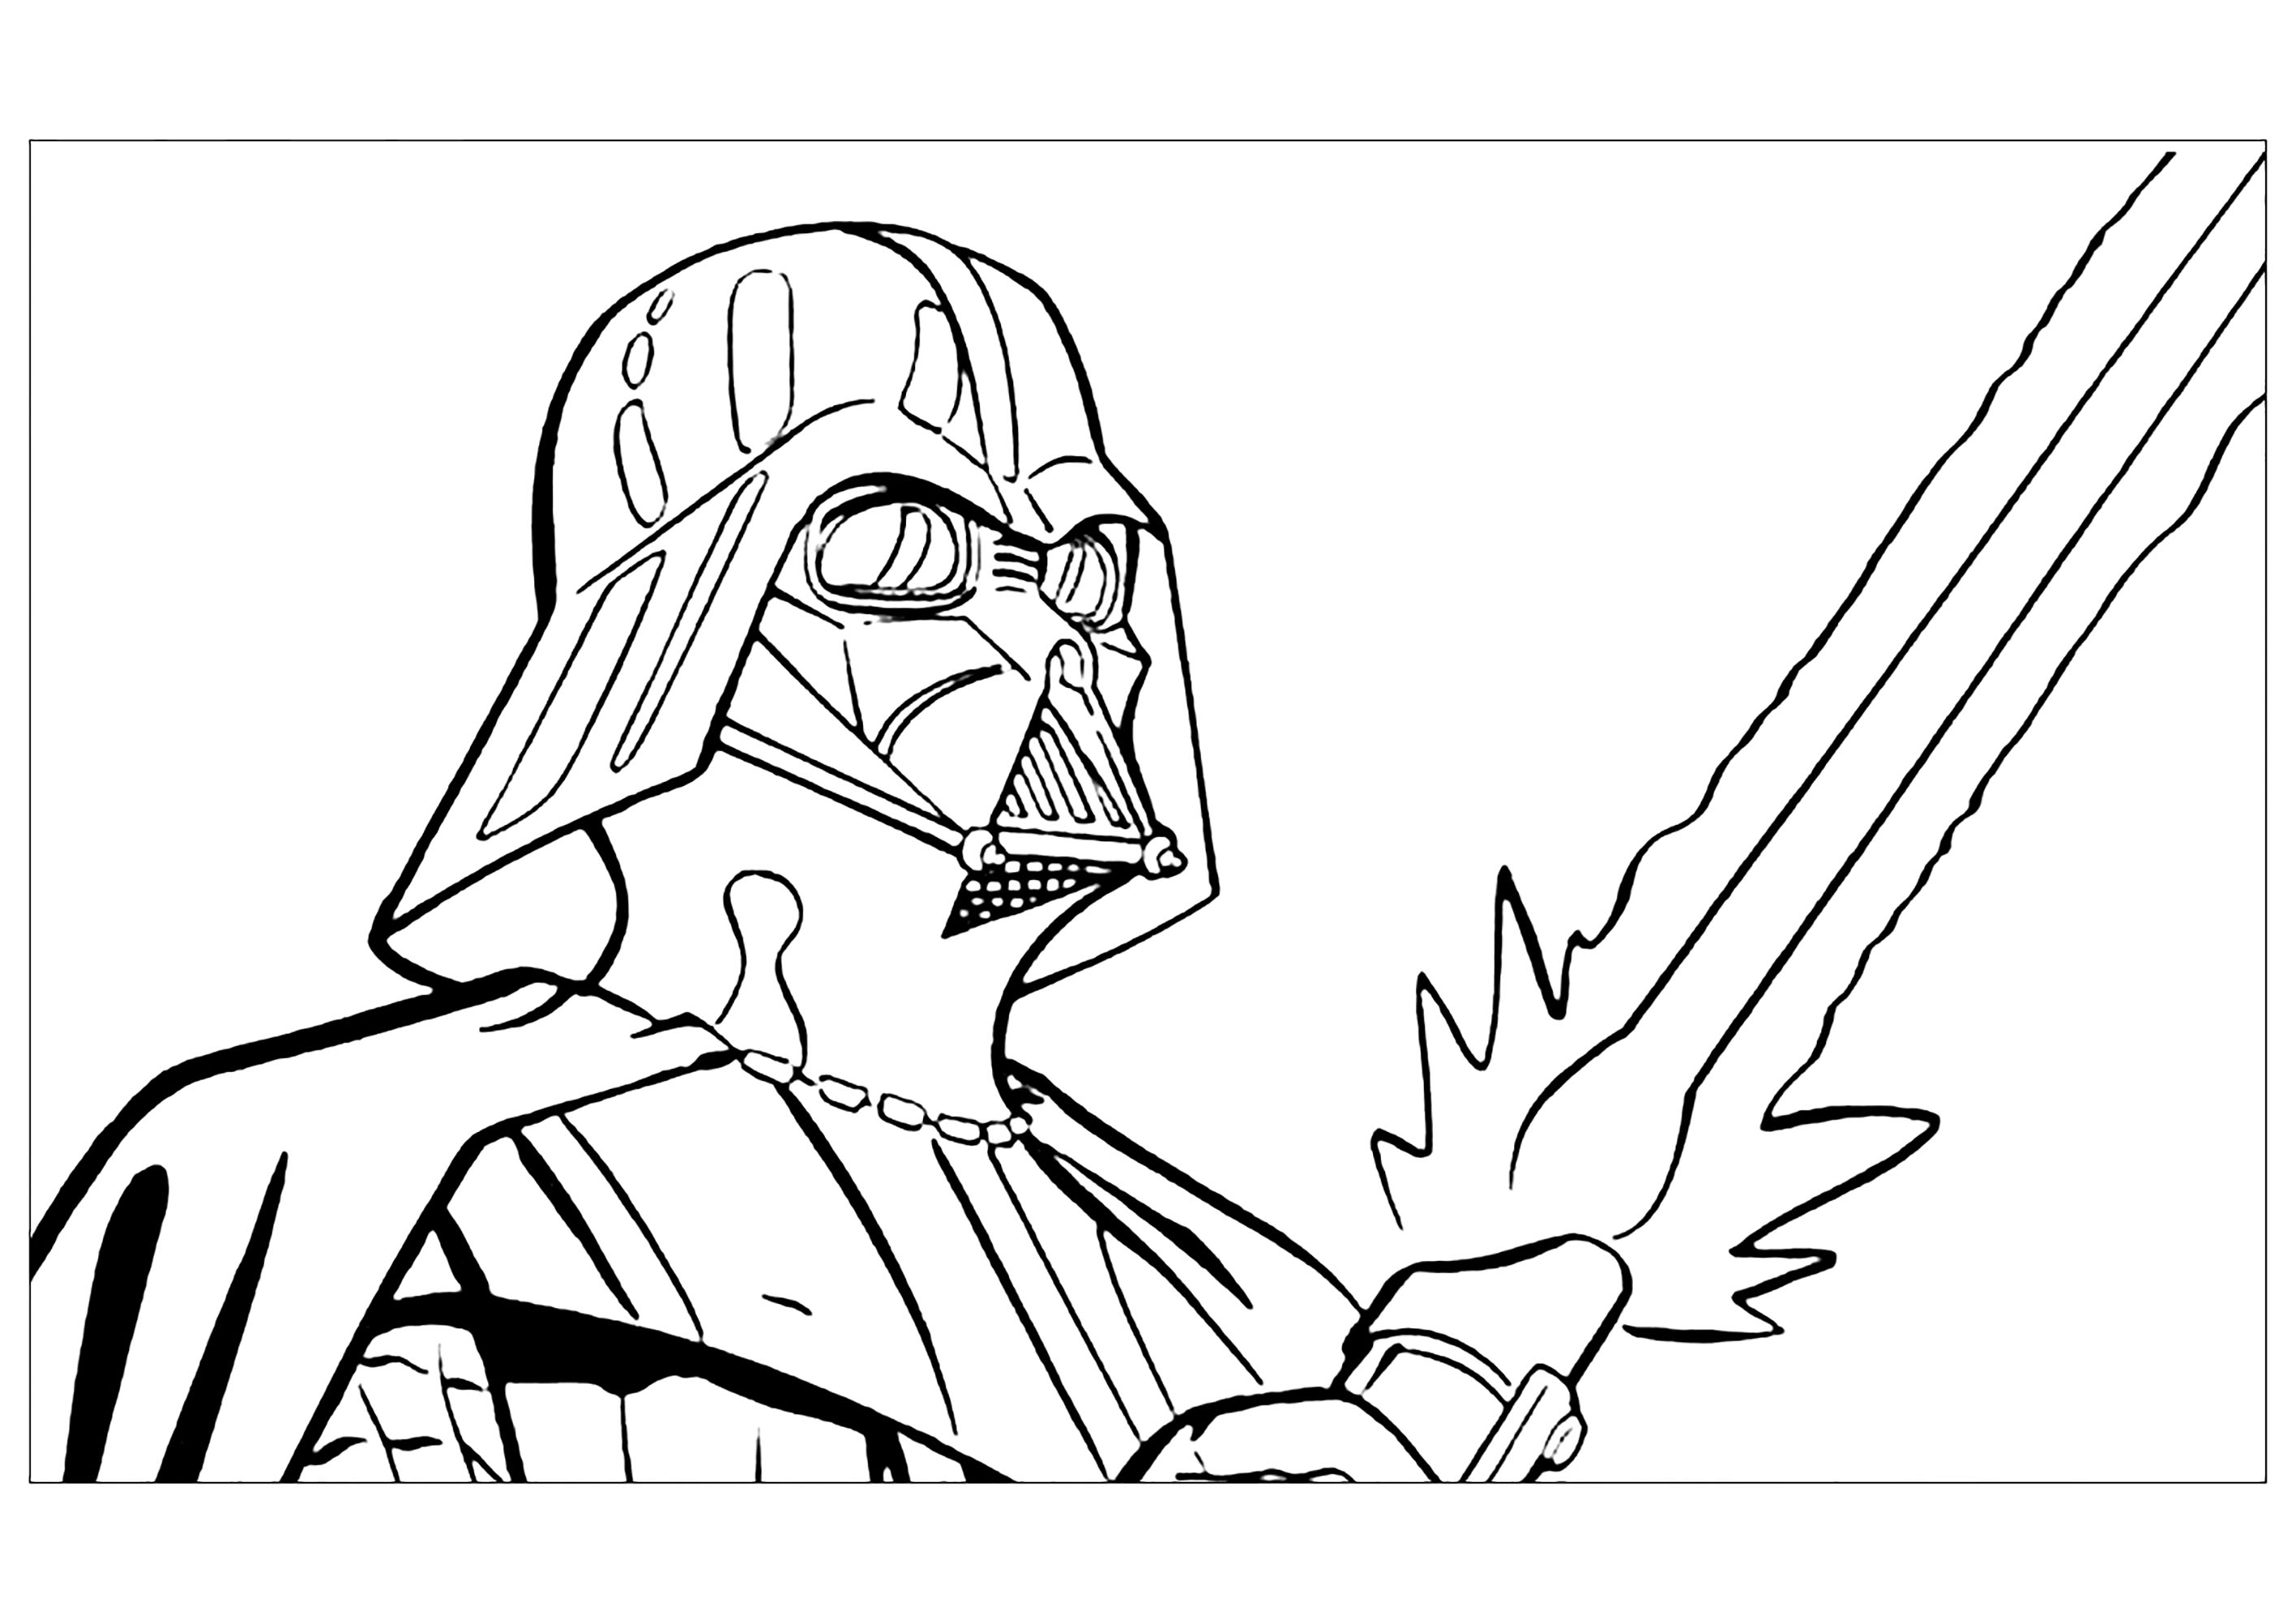 star wars coloring pages for kids star wars clone wars coloring pages learny kids for kids wars coloring pages star